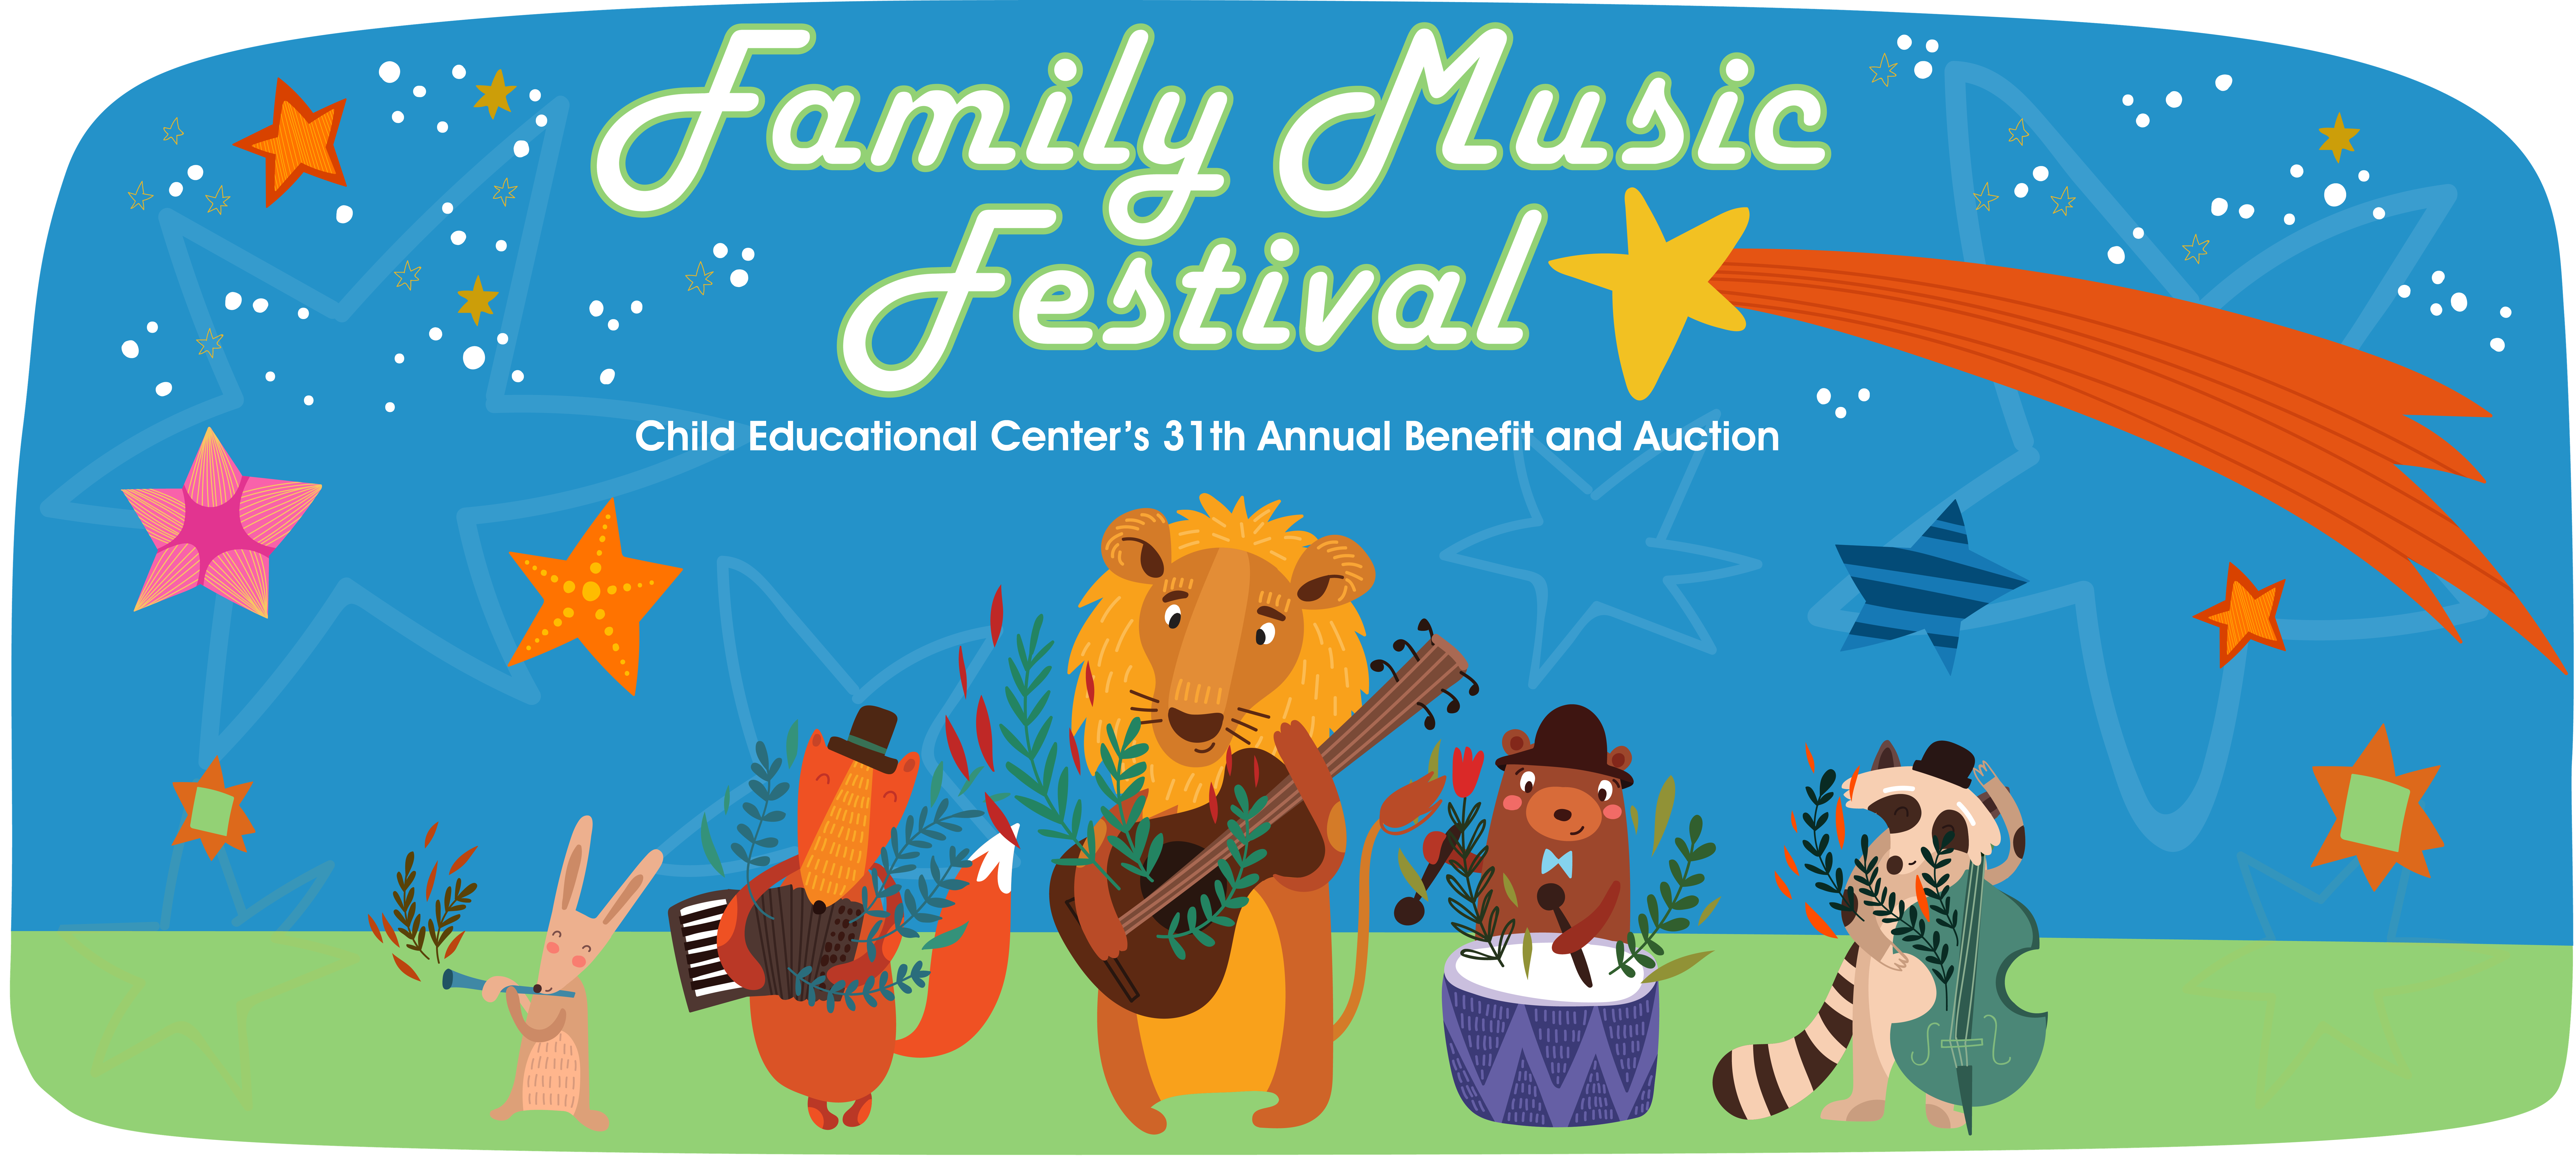 4th Annual Family Music Festival